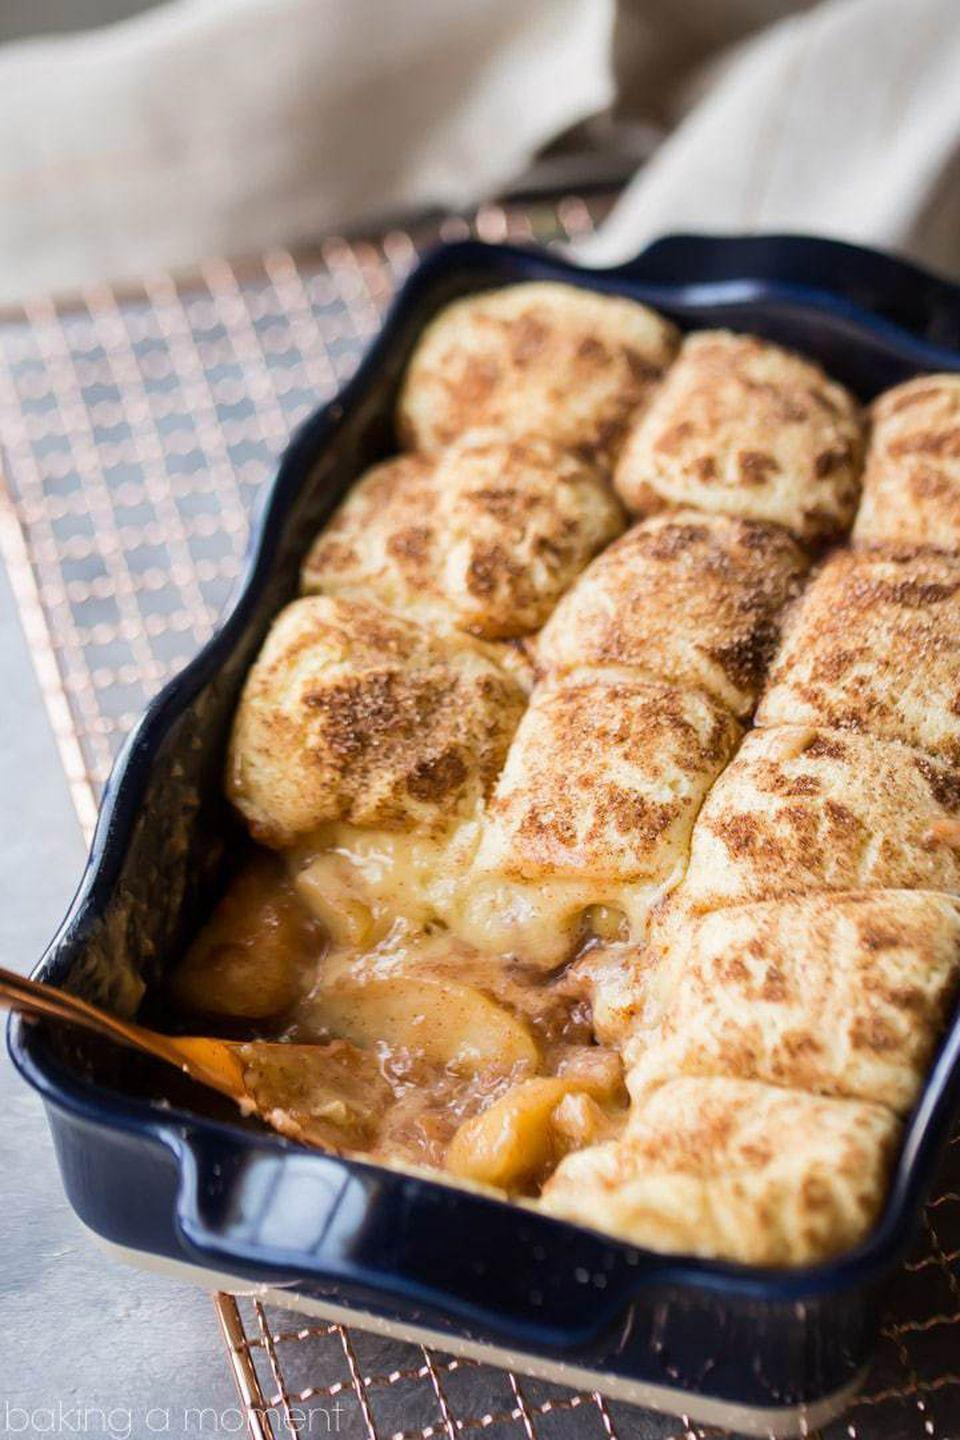 """<p>Never choose between cookies or cobbler again with this comforting dessert. Plus, a snickerdoodle cookie topping means you won't need to serve this dish á la mode.</p><p><strong>Get the recipe at <a rel=""""nofollow noopener"""" href=""""https://bakingamoment.com/snickerdoodle-apple-cobbler/"""" target=""""_blank"""" data-ylk=""""slk:Baking a Moment"""" class=""""link rapid-noclick-resp"""">Baking a Moment</a>.</strong><br></p><p><a rel=""""nofollow noopener"""" href=""""https://www.amazon.com/Starfrit-93013-Pro-Apple-Peeler-slicer/dp/B000X9EQ7Q"""" target=""""_blank"""" data-ylk=""""slk:SHOP APPLE PEELERS"""" class=""""link rapid-noclick-resp"""">SHOP APPLE PEELERS</a></p>"""